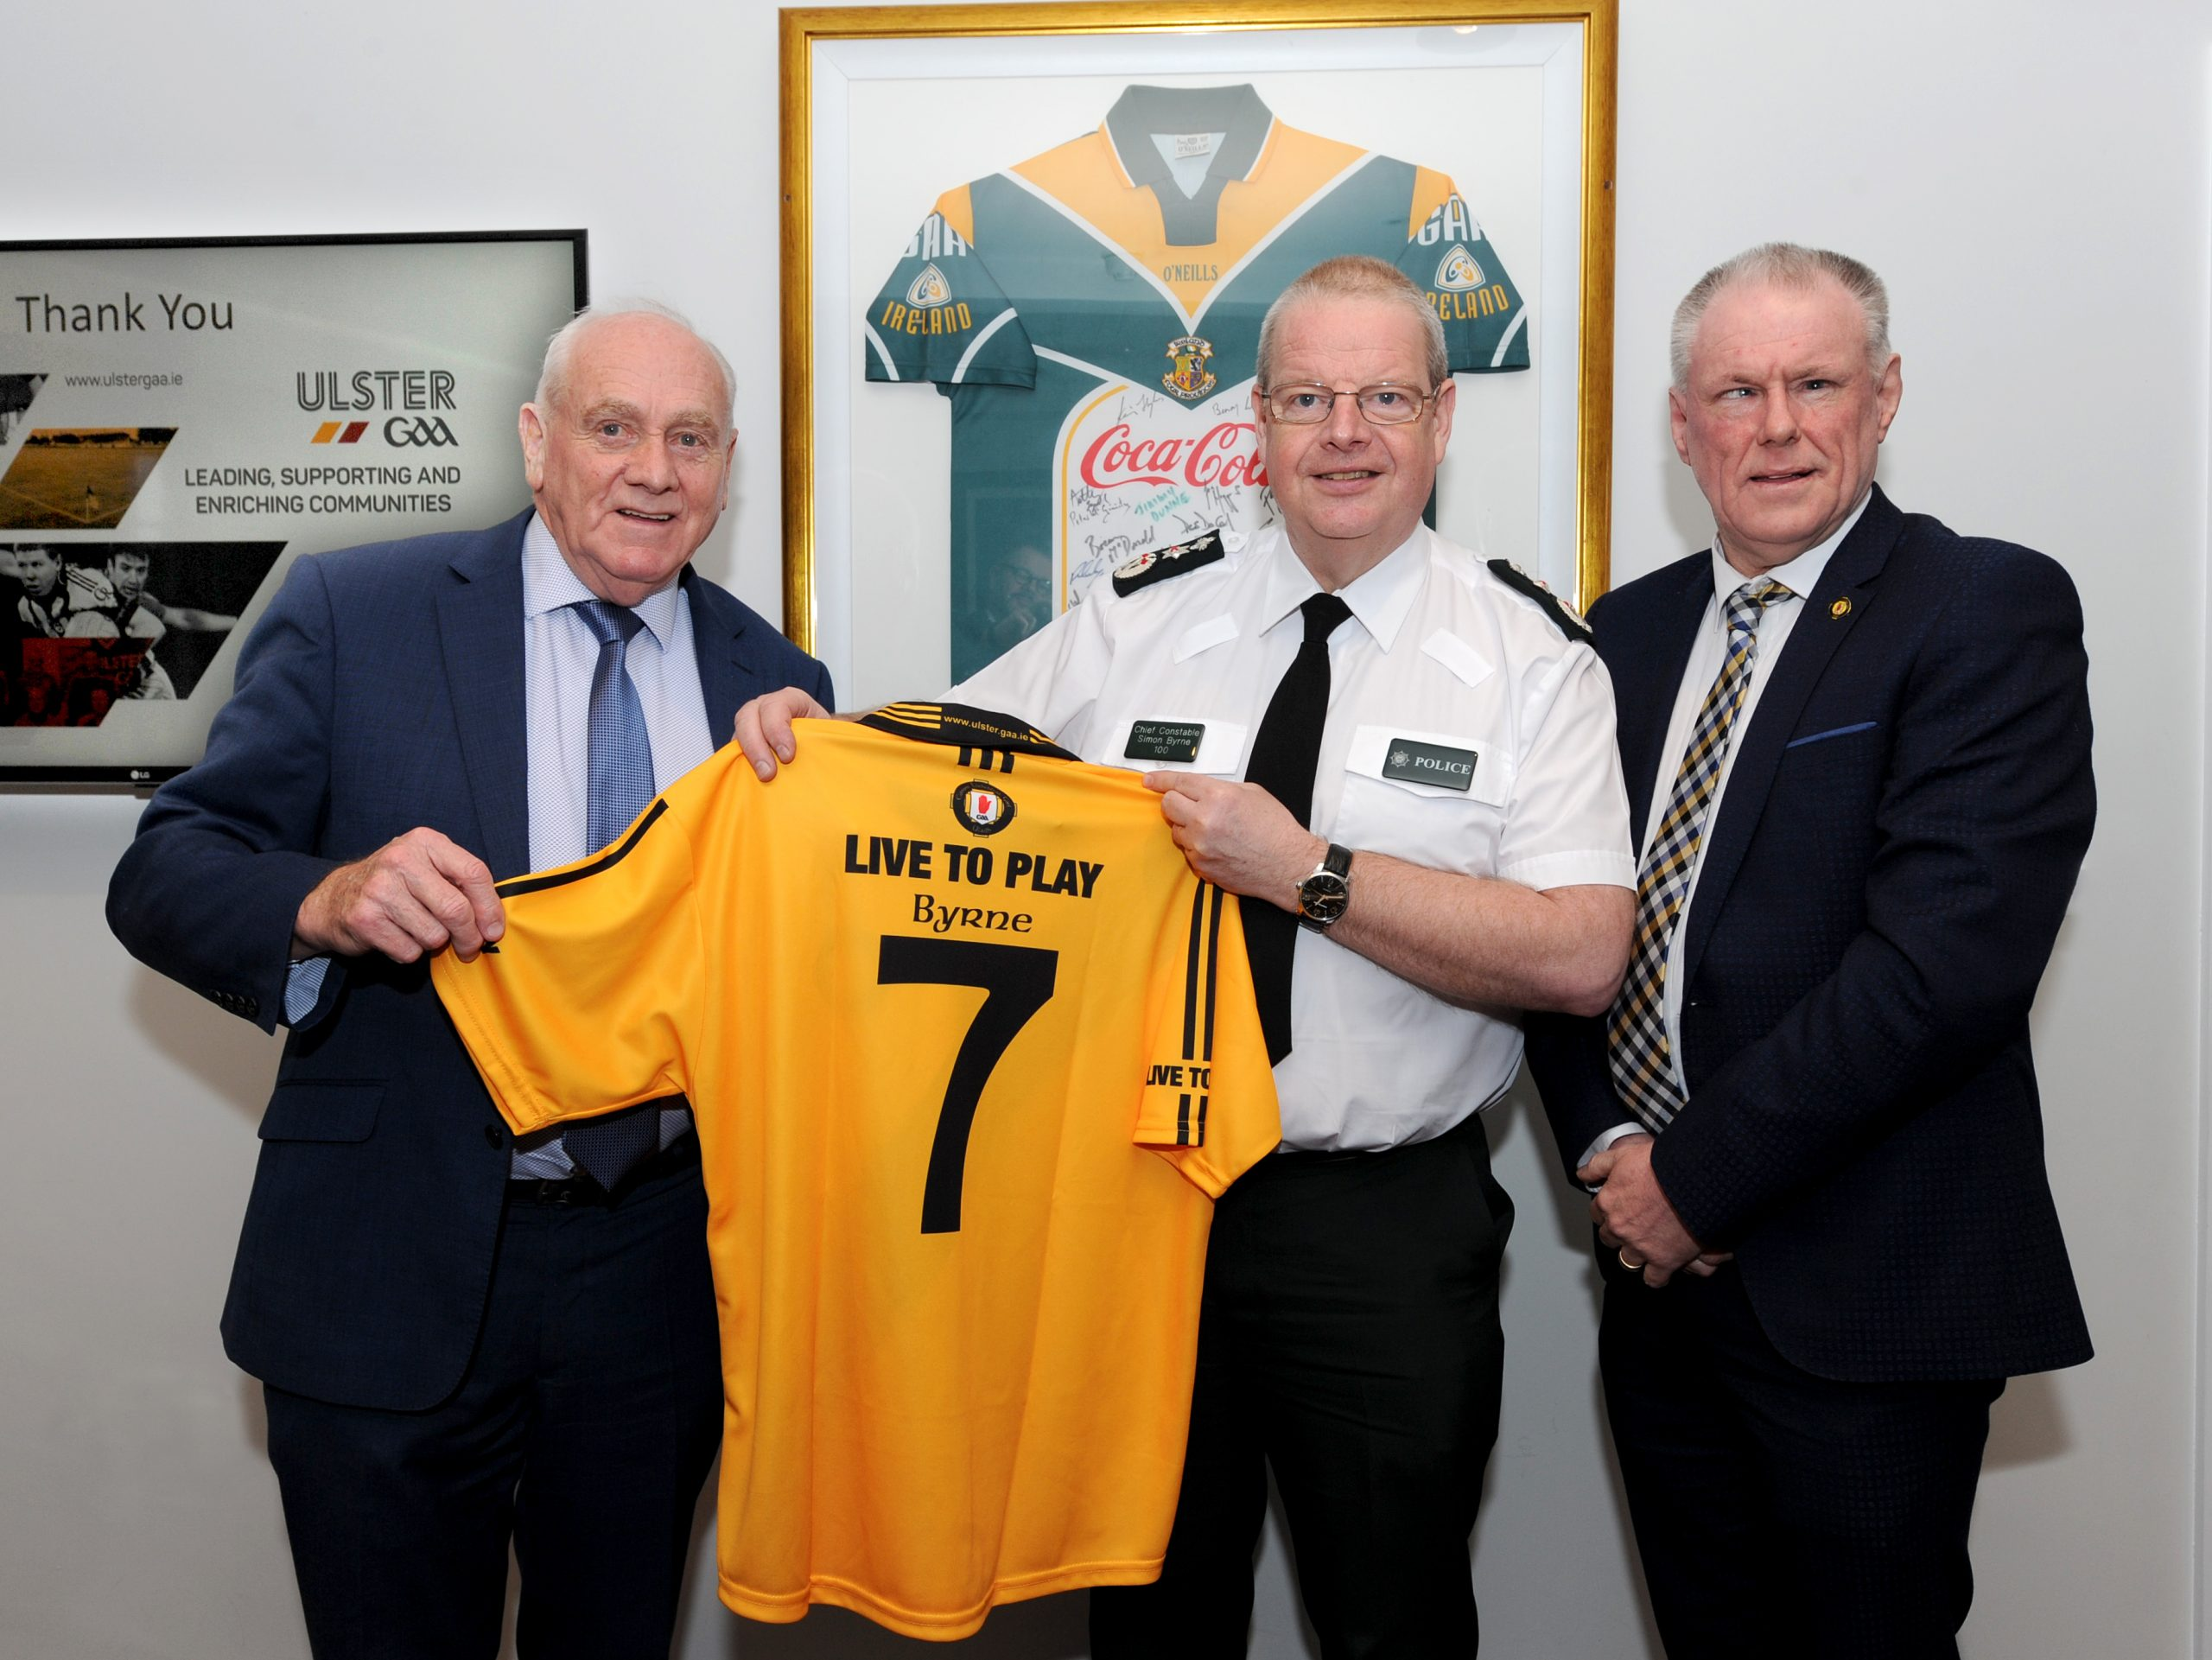 Ulster GAA meets with Chief Constable